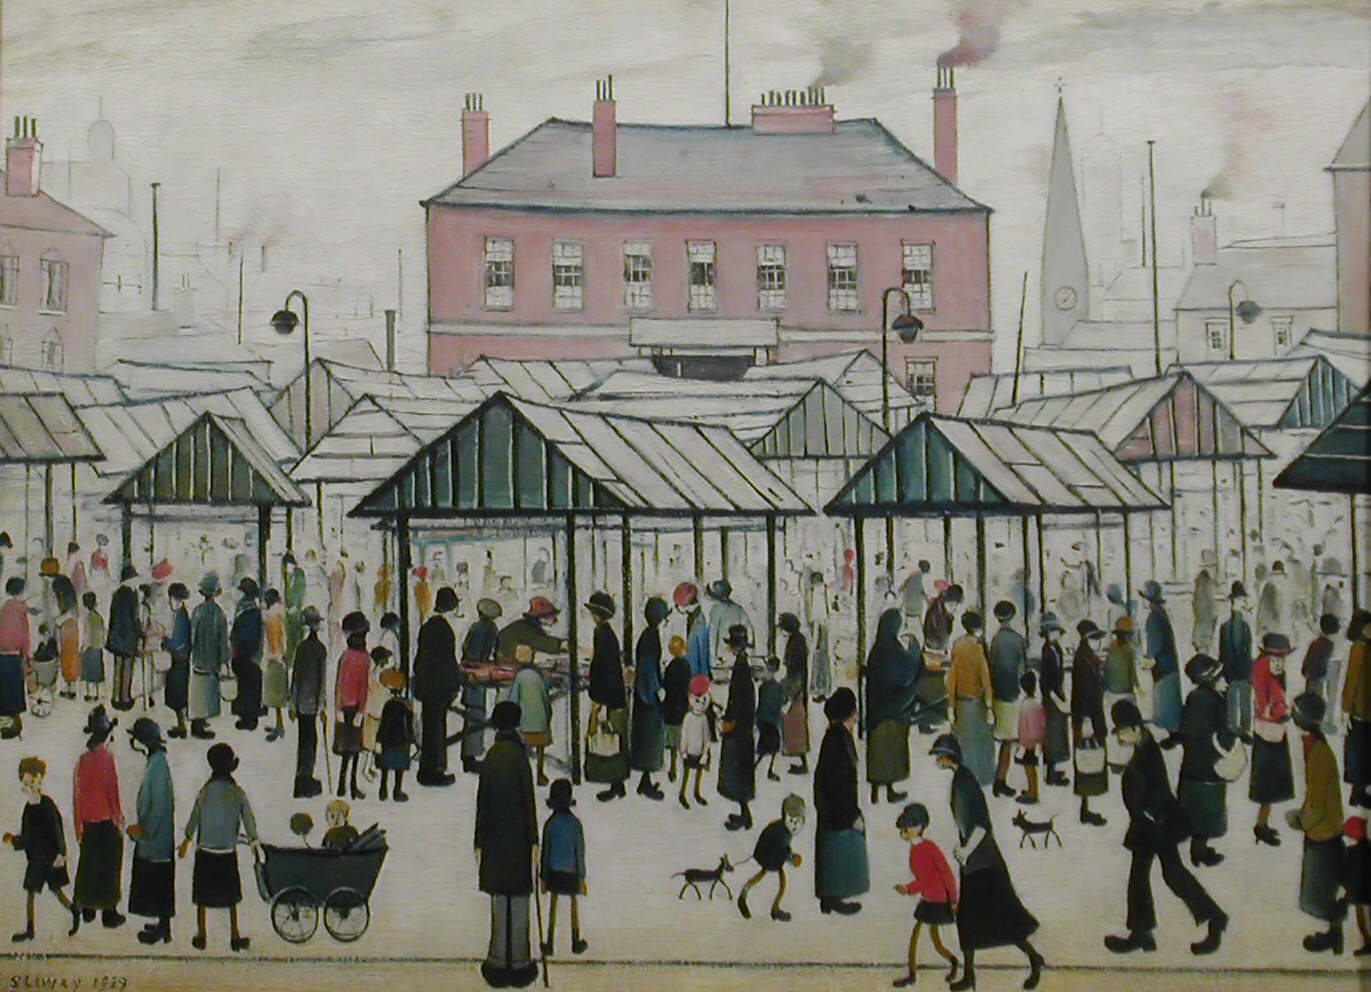 Market Scene in a Northern Town by L.S. Lowry. Copyright: The Lowry, Salford.